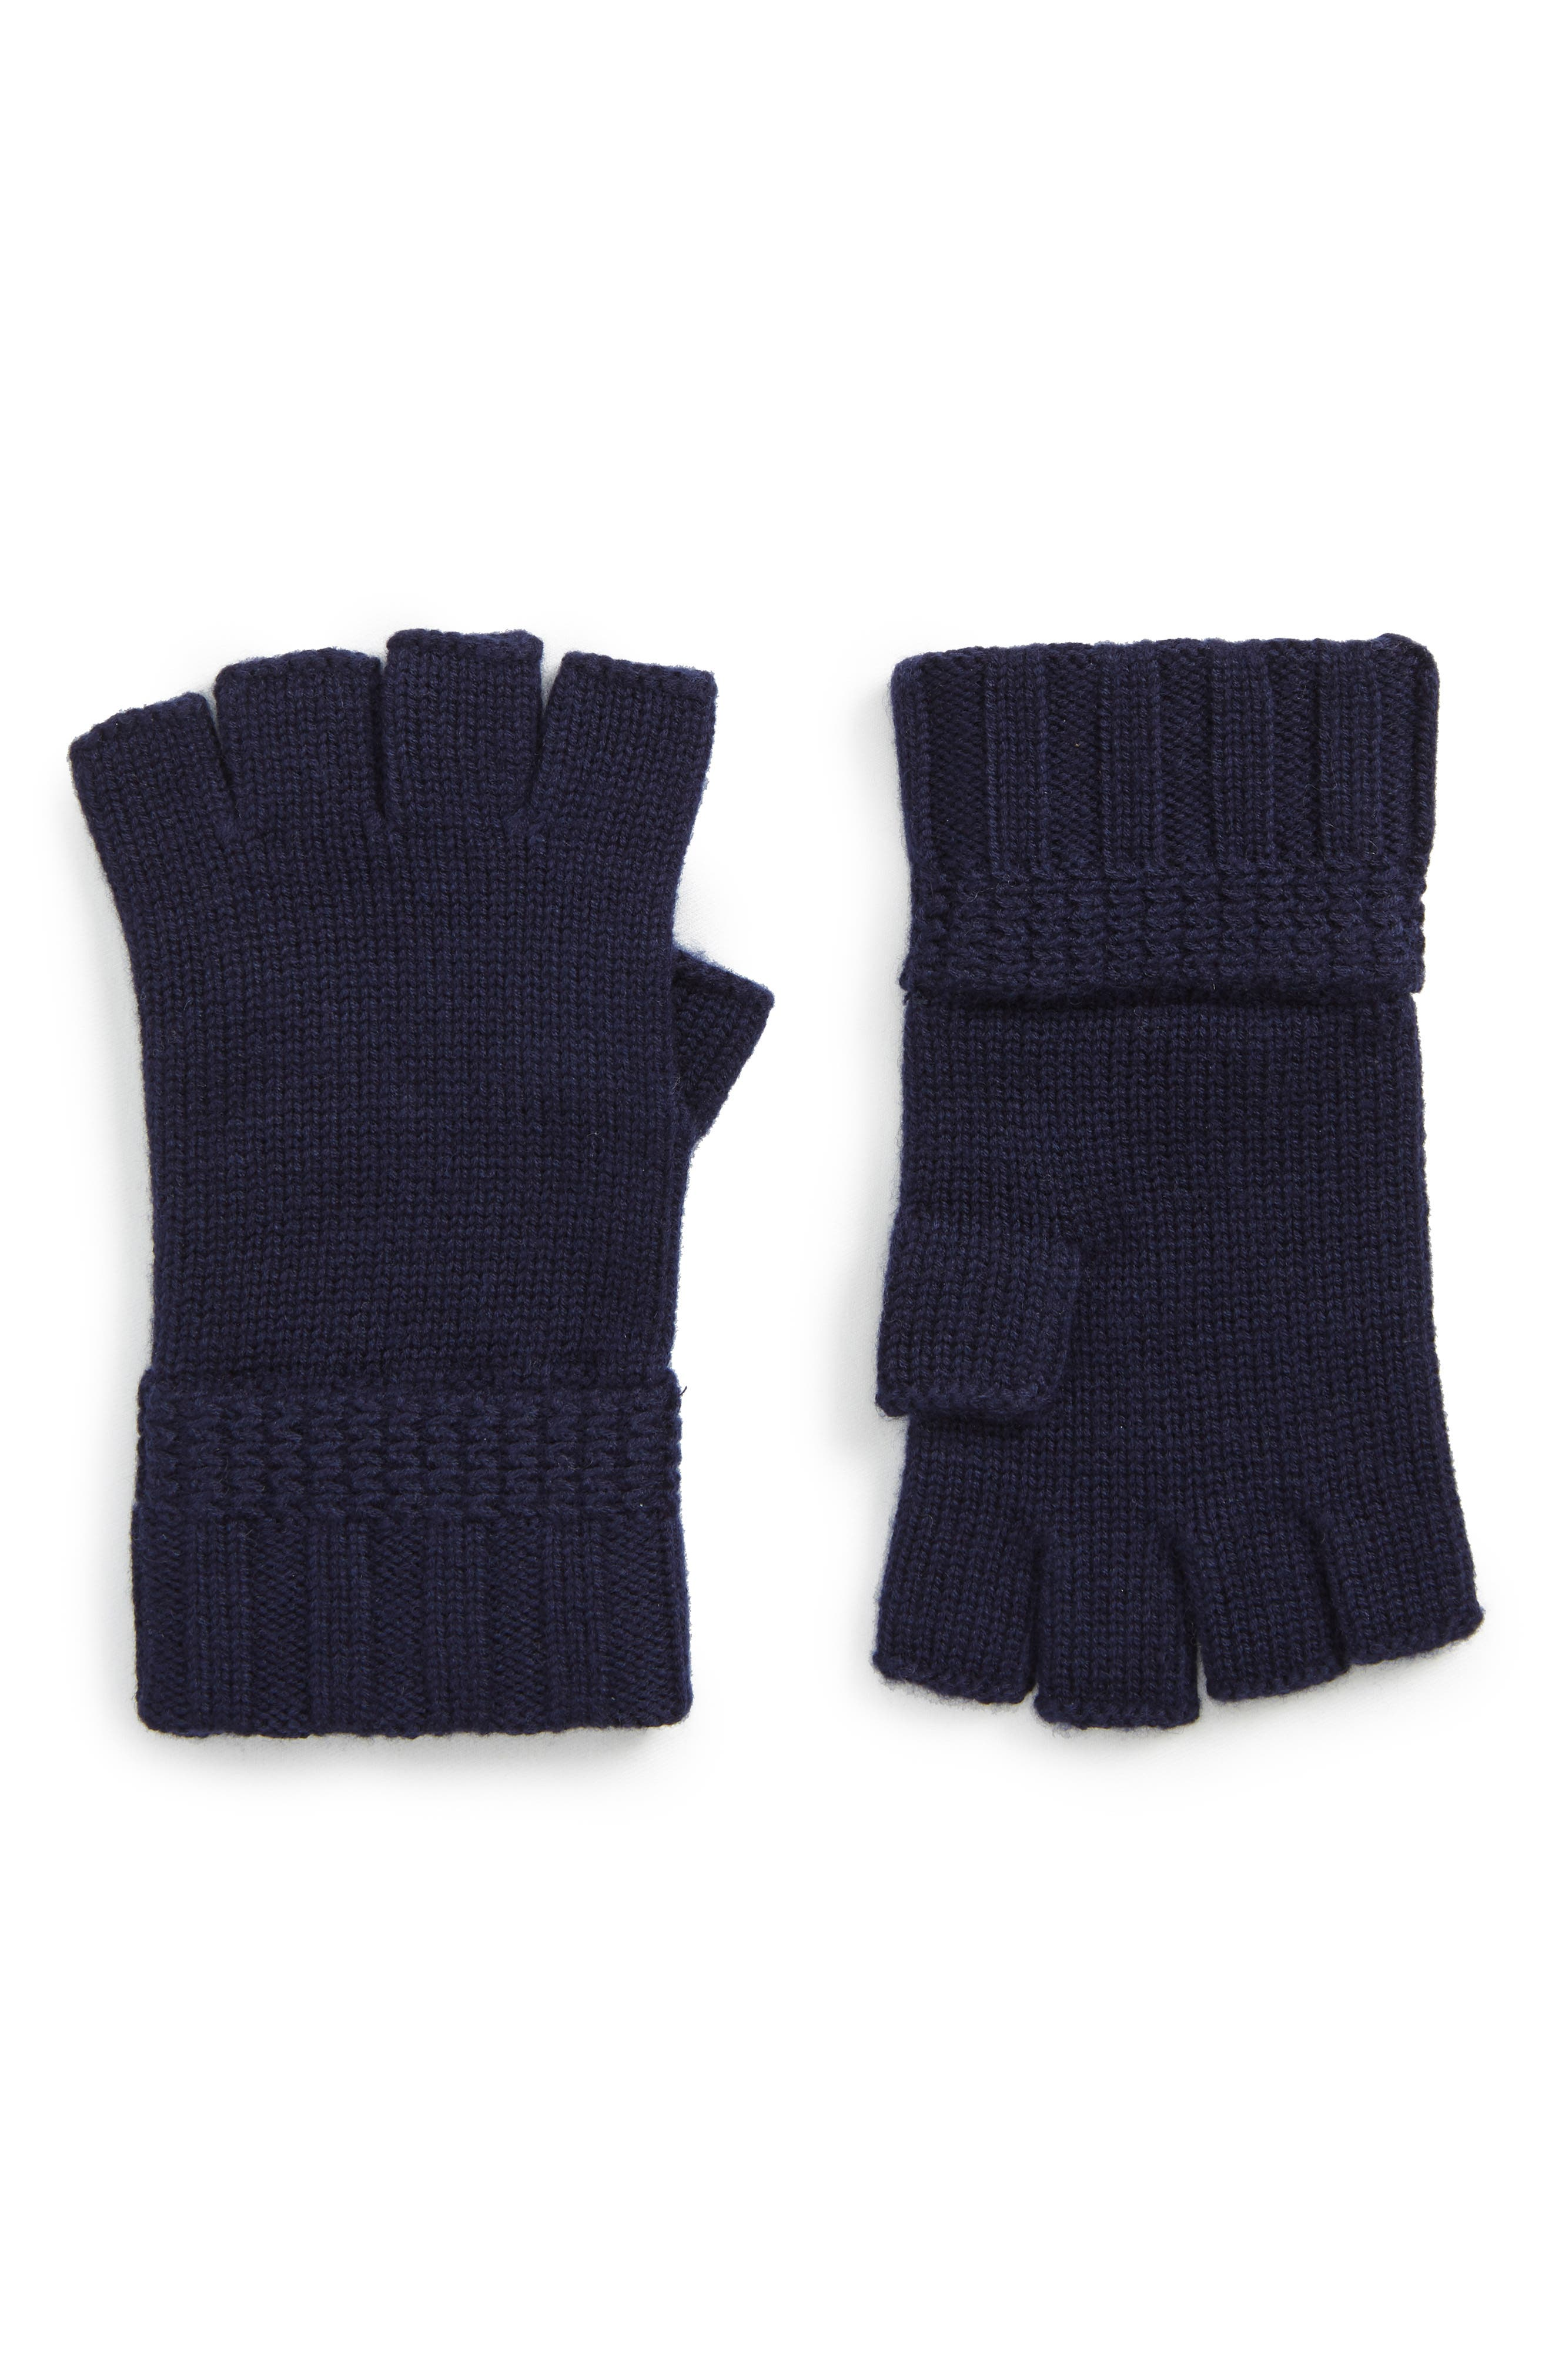 UGG<sup>®</sup> Texture Knit Fingerless Gloves,                             Main thumbnail 3, color,